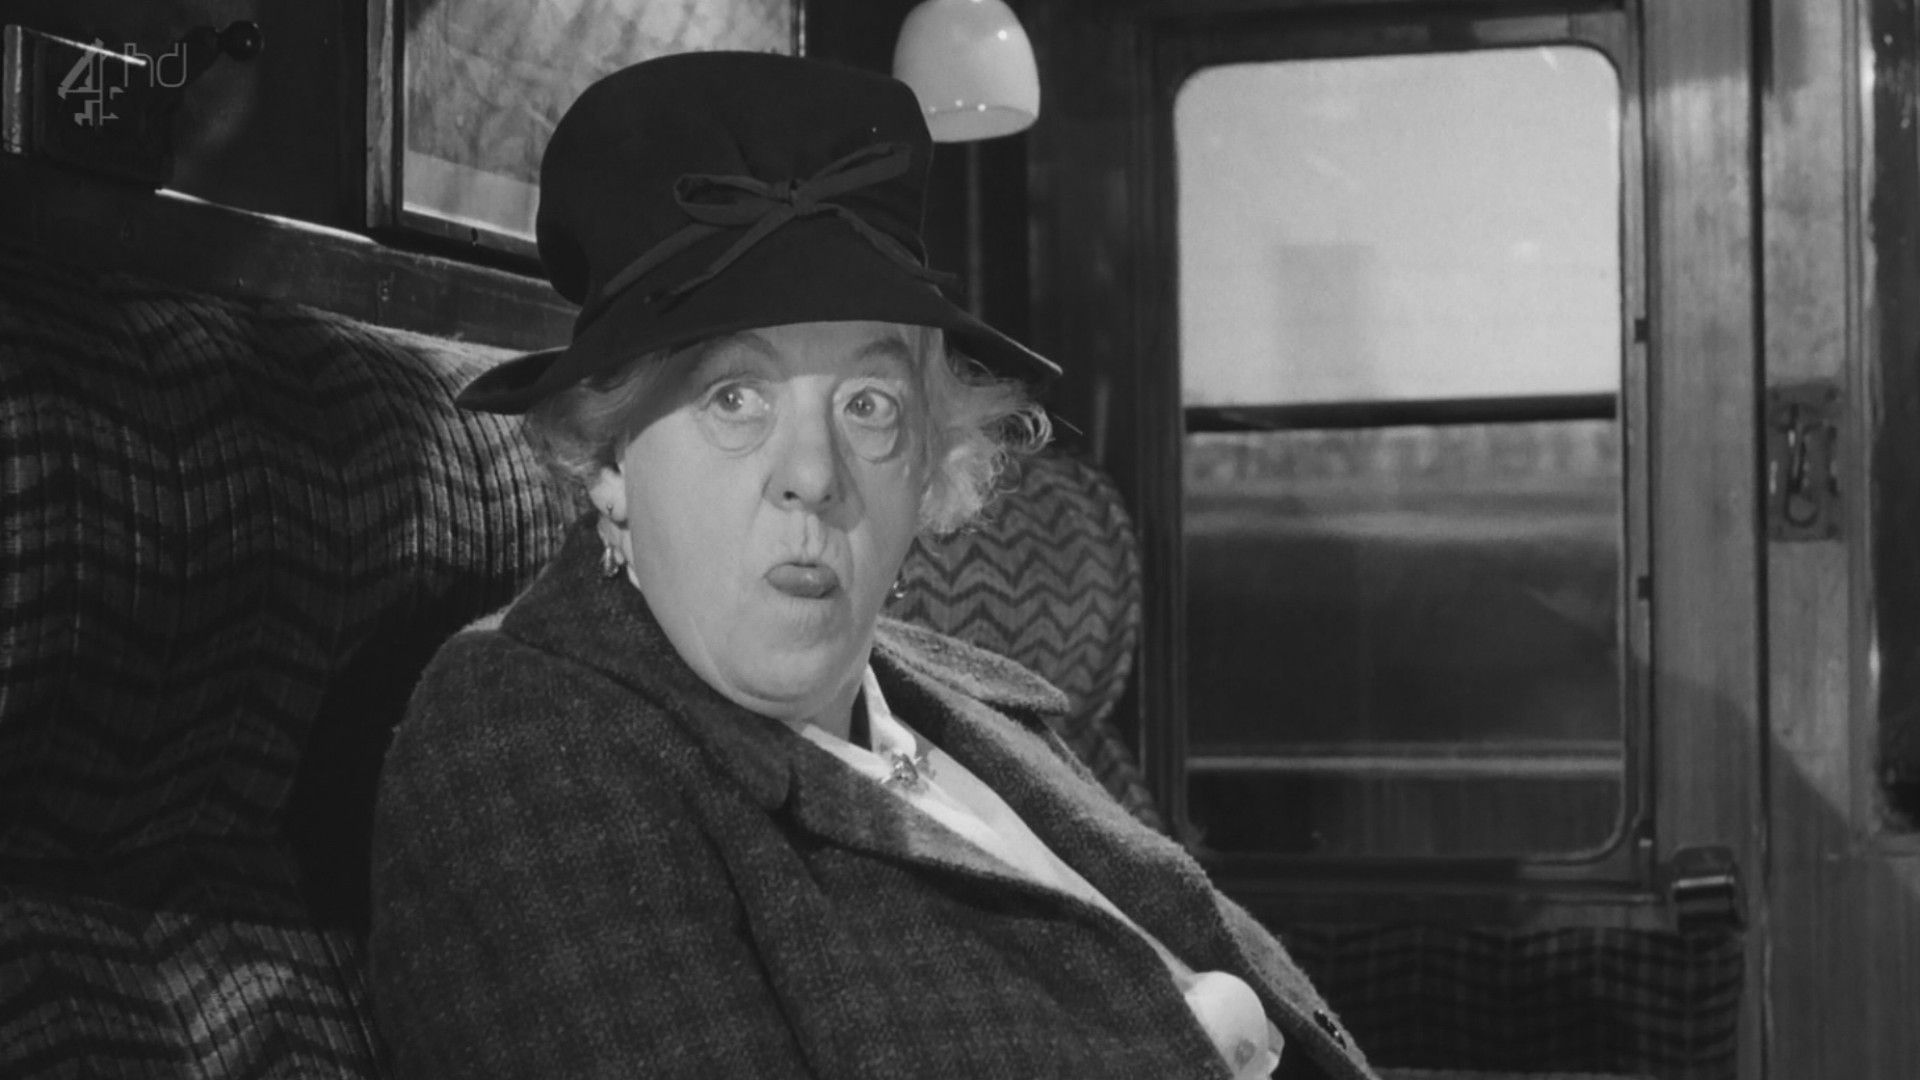 margaret rutherford oscarmargaret rutherford jung, margaret rutherford filme, margaret rutherford, margaret rutherford youtube, margaret rutherford young, margaret rutherford miss marple dvd, margaret rutherford miss marple movies, margaret rutherford miss marple full movies, margaret rutherford miss marple theme, margaret rutherford wiki, margaret rutherford imdb, margaret rutherford stringer davis, margaret rutherford todesursache, margaret rutherford biografie, margaret rutherford youtube full movies, margaret rutherford oscar, margaret rutherford agatha christie movies, margaret rutherford films list, margaret rutherford grab, margaret rutherford films youtube